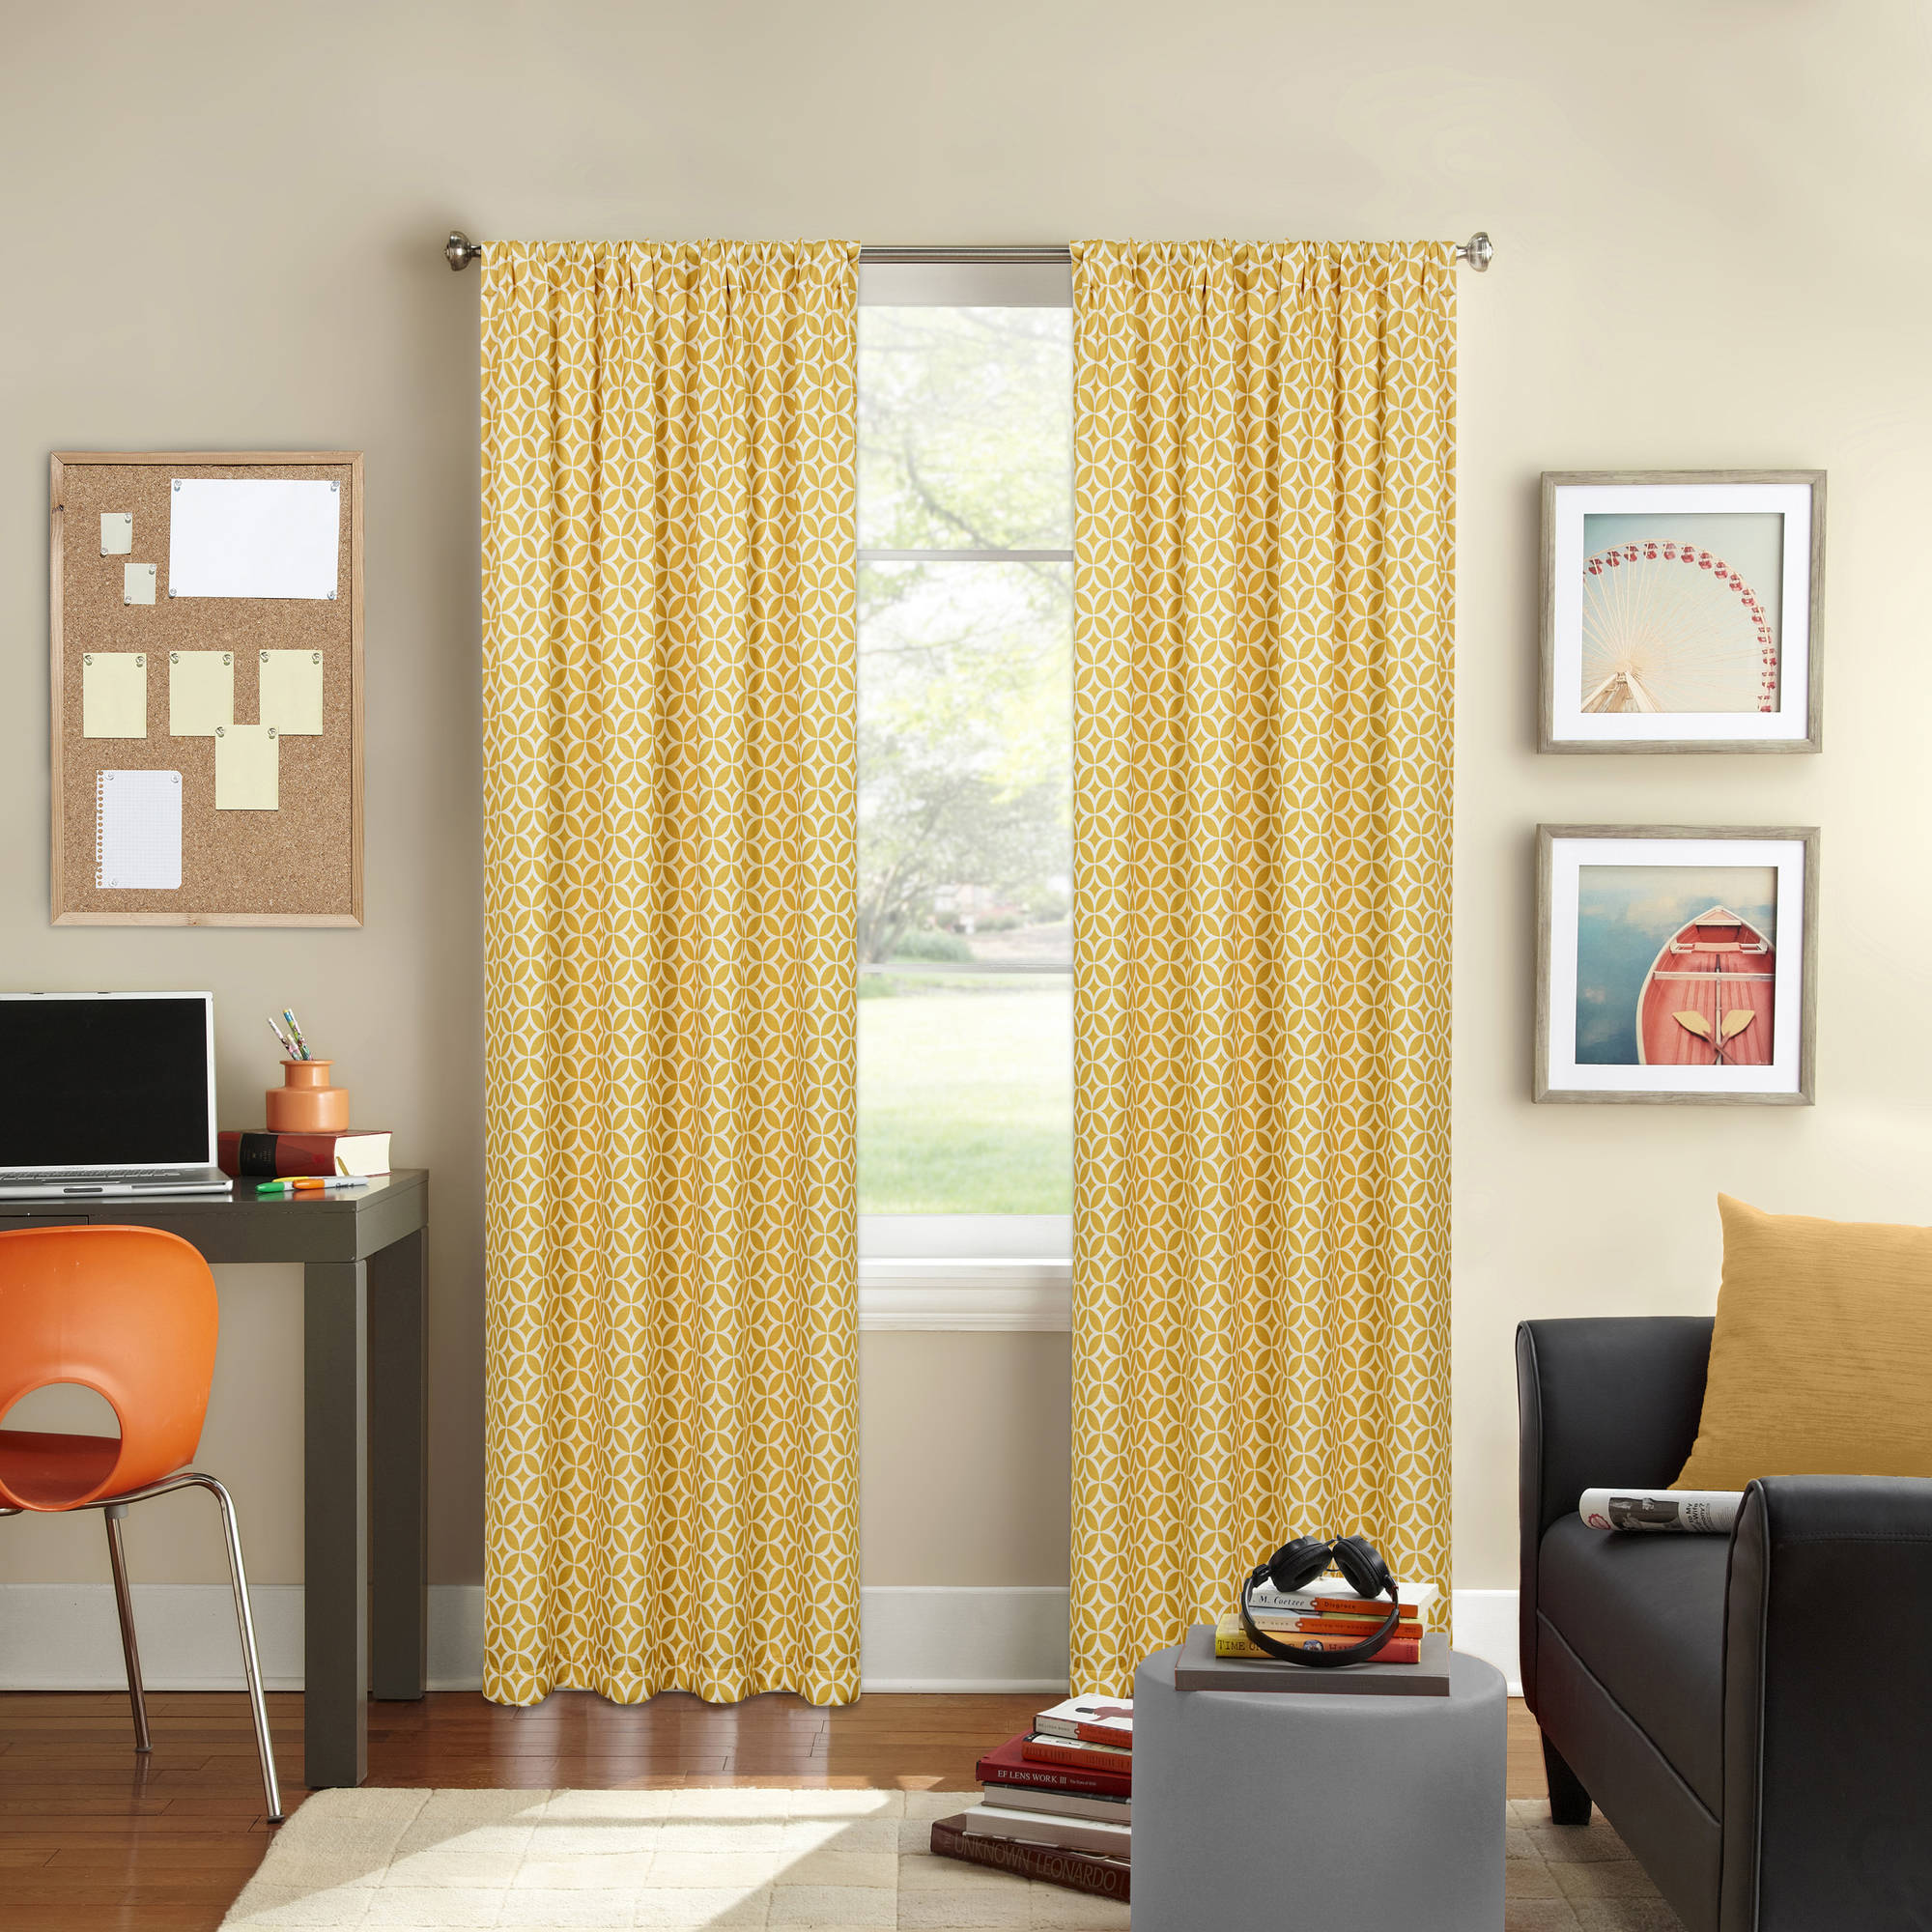 Better Homes and Gardens Circles and Diamonds Printed Window Curtain, Rod Pocket